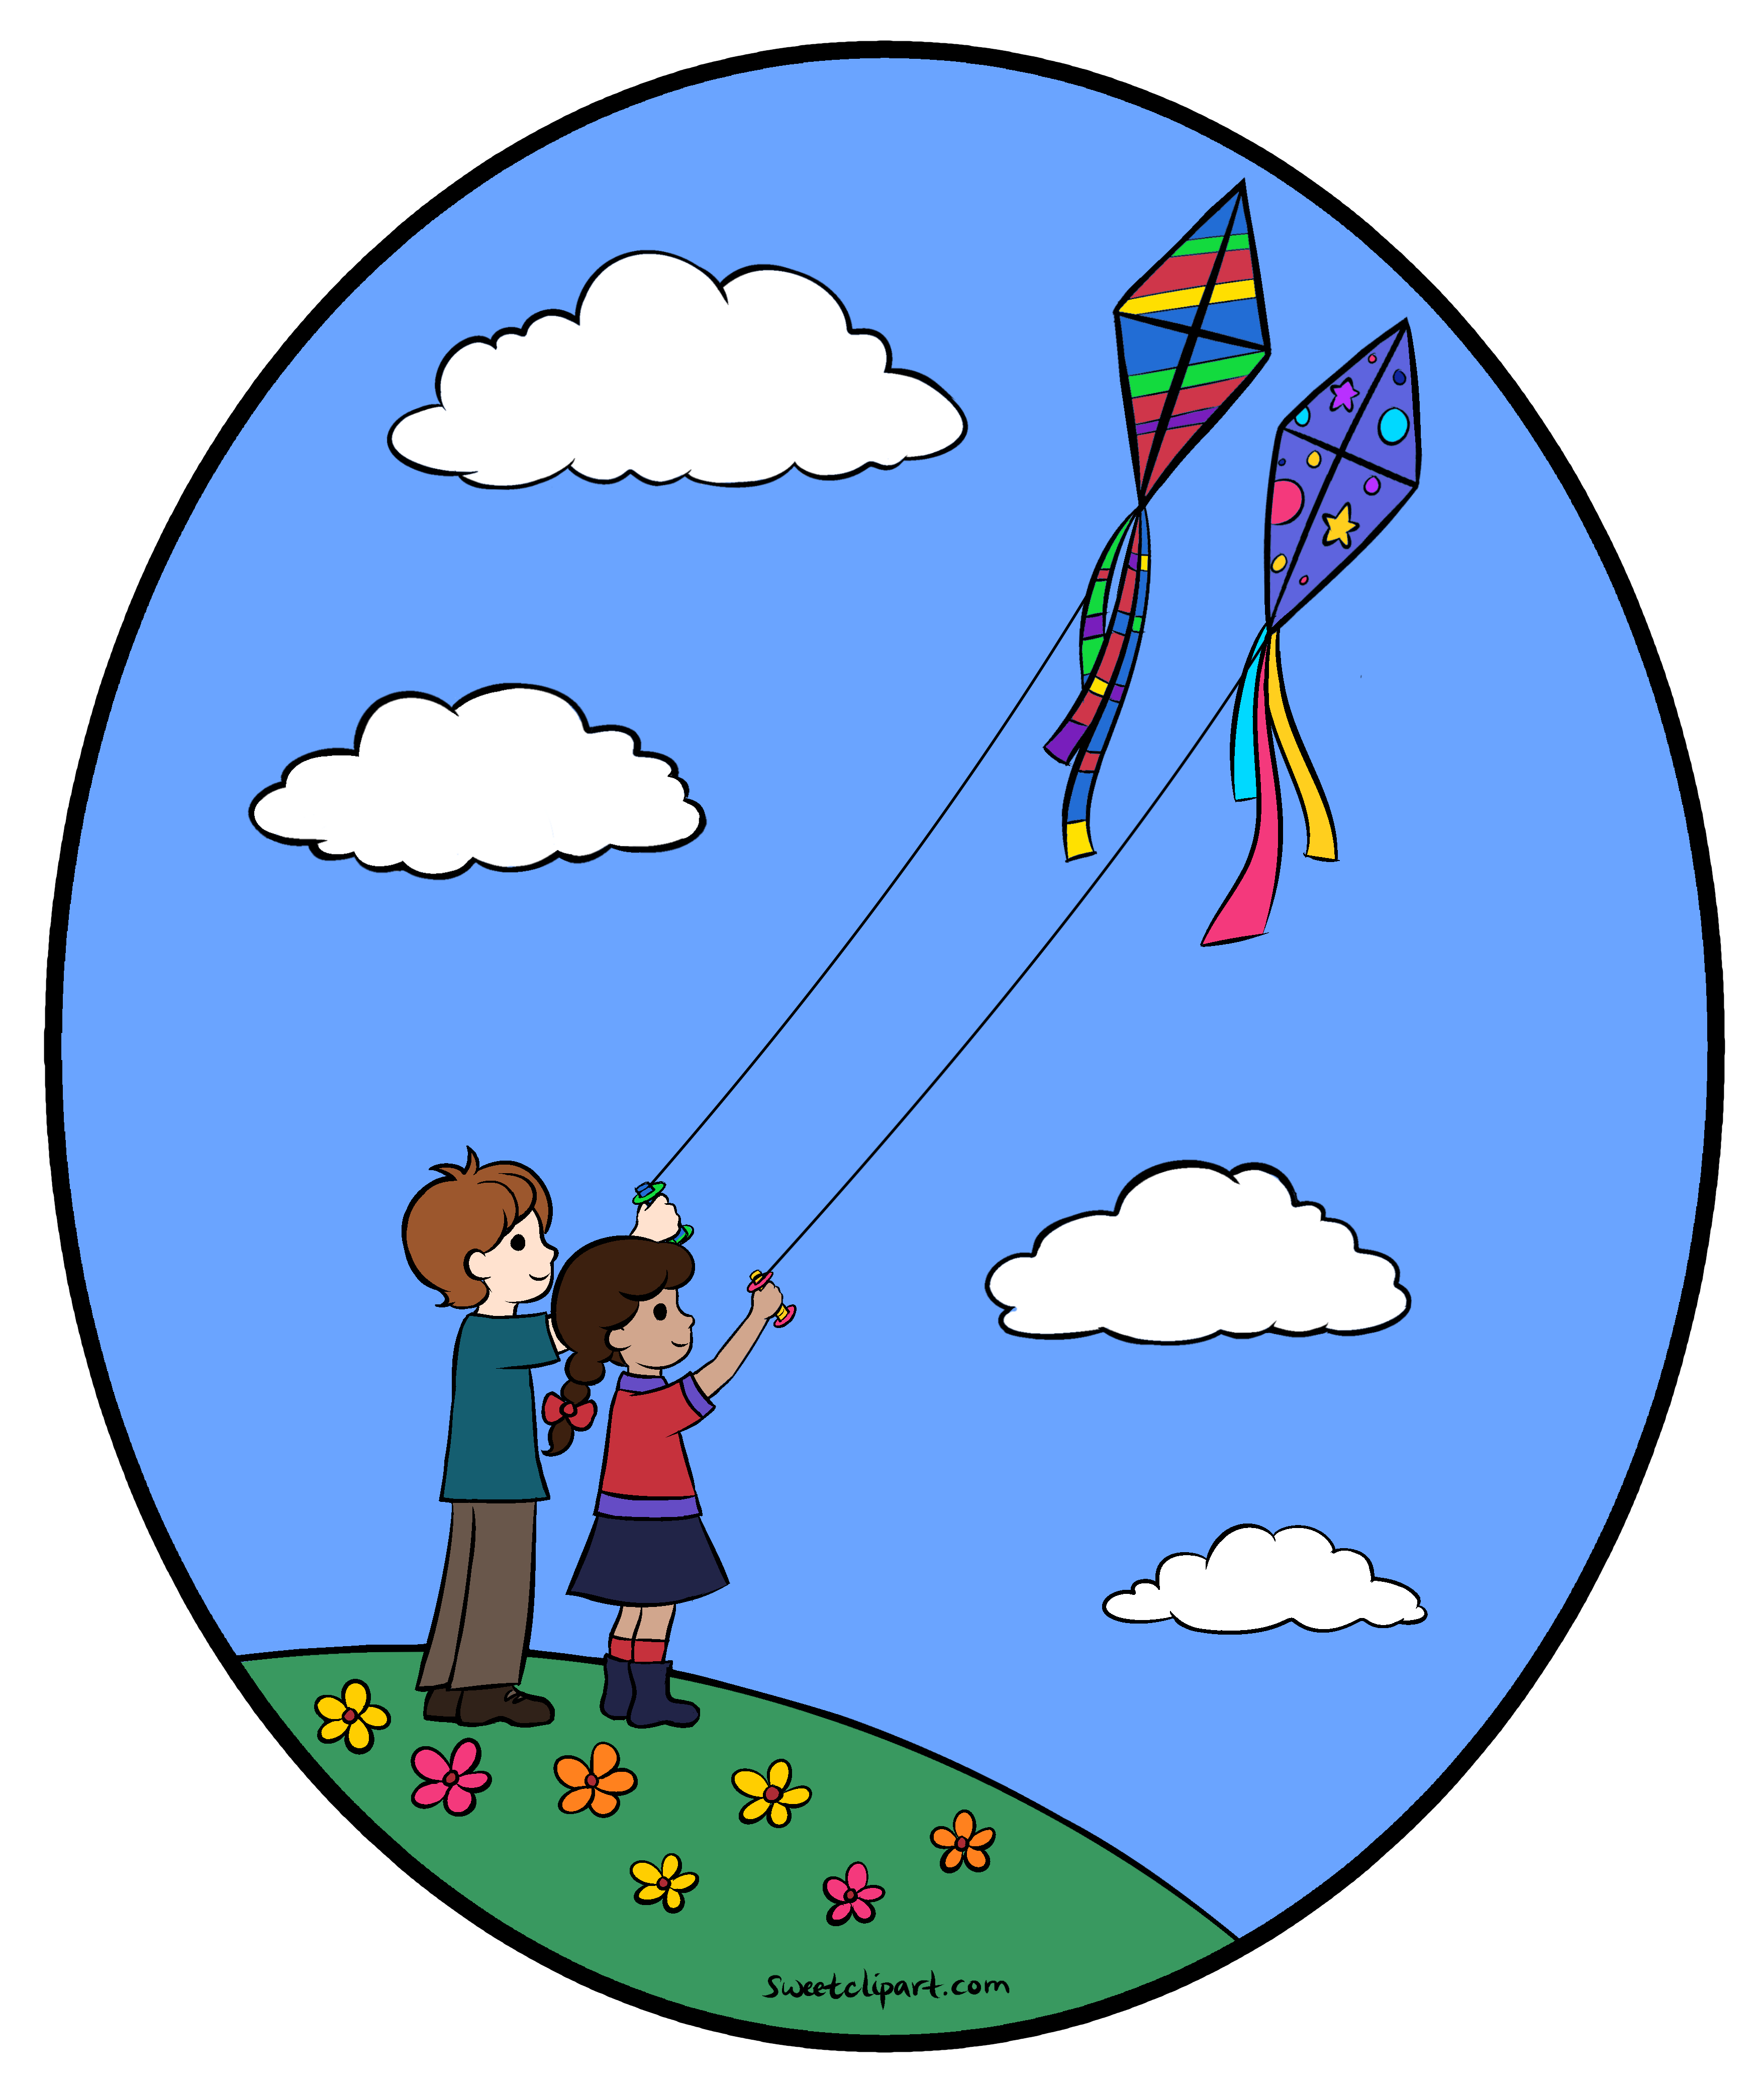 Rope clipart kite. Flying kites color clip